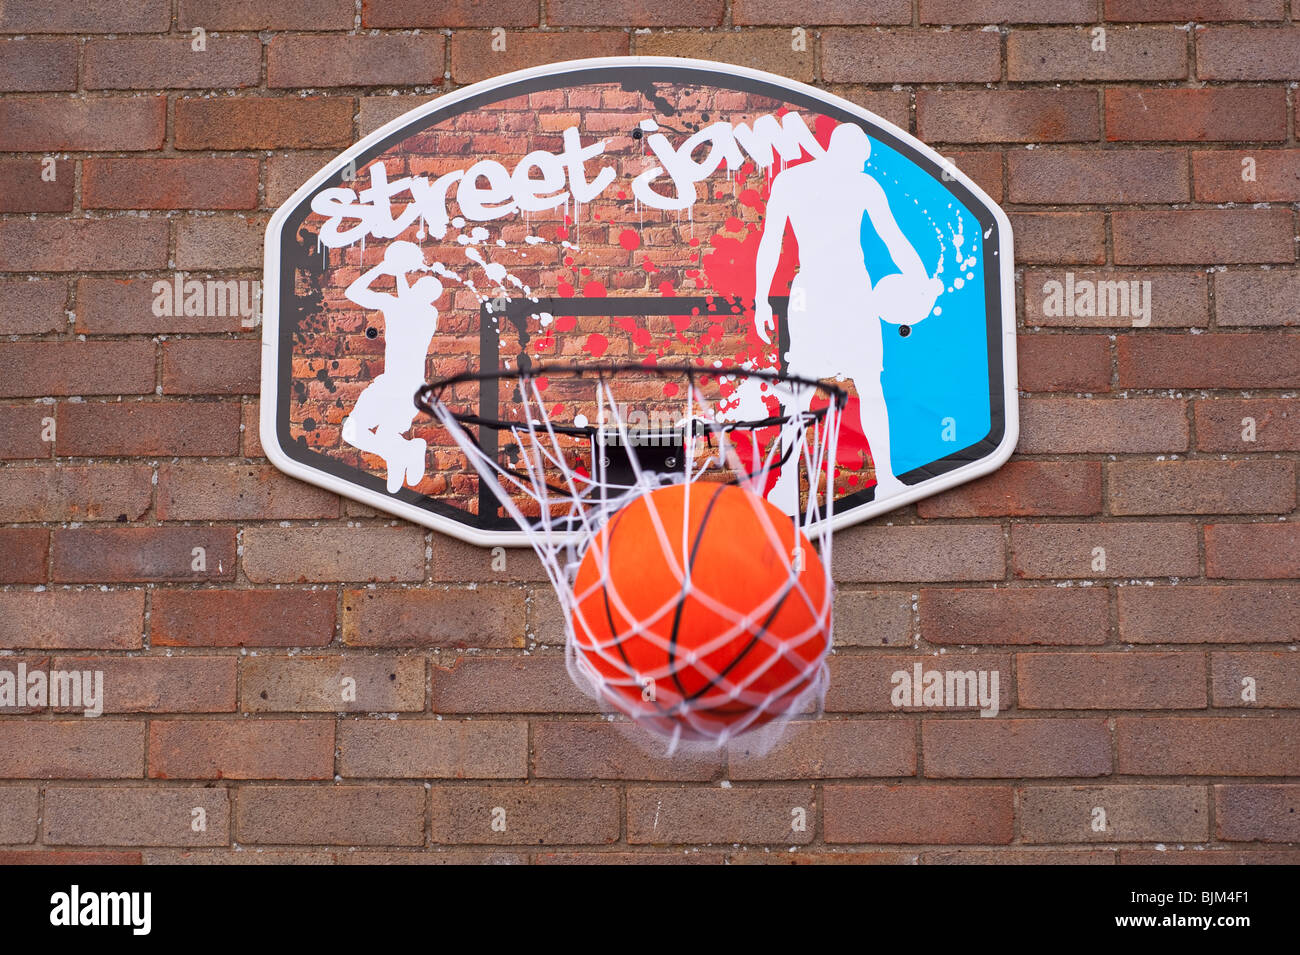 A basketball goes through the hoop net scoring a point - Stock Image